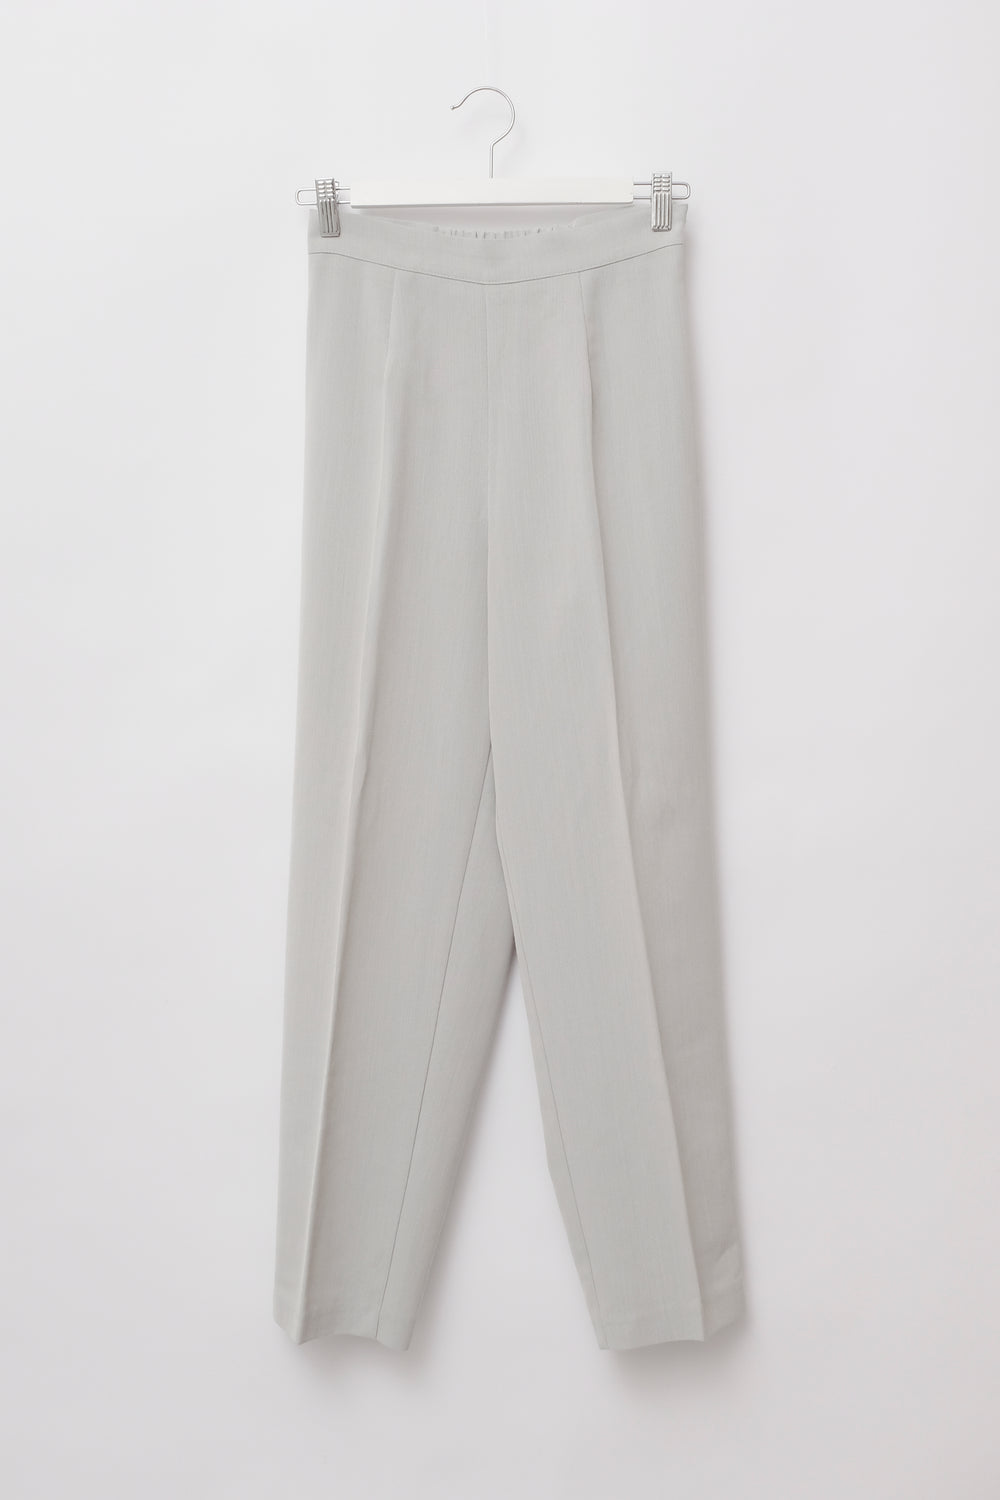 0017_VINTAGE HIGH WAISTED WOOL TROUSERS